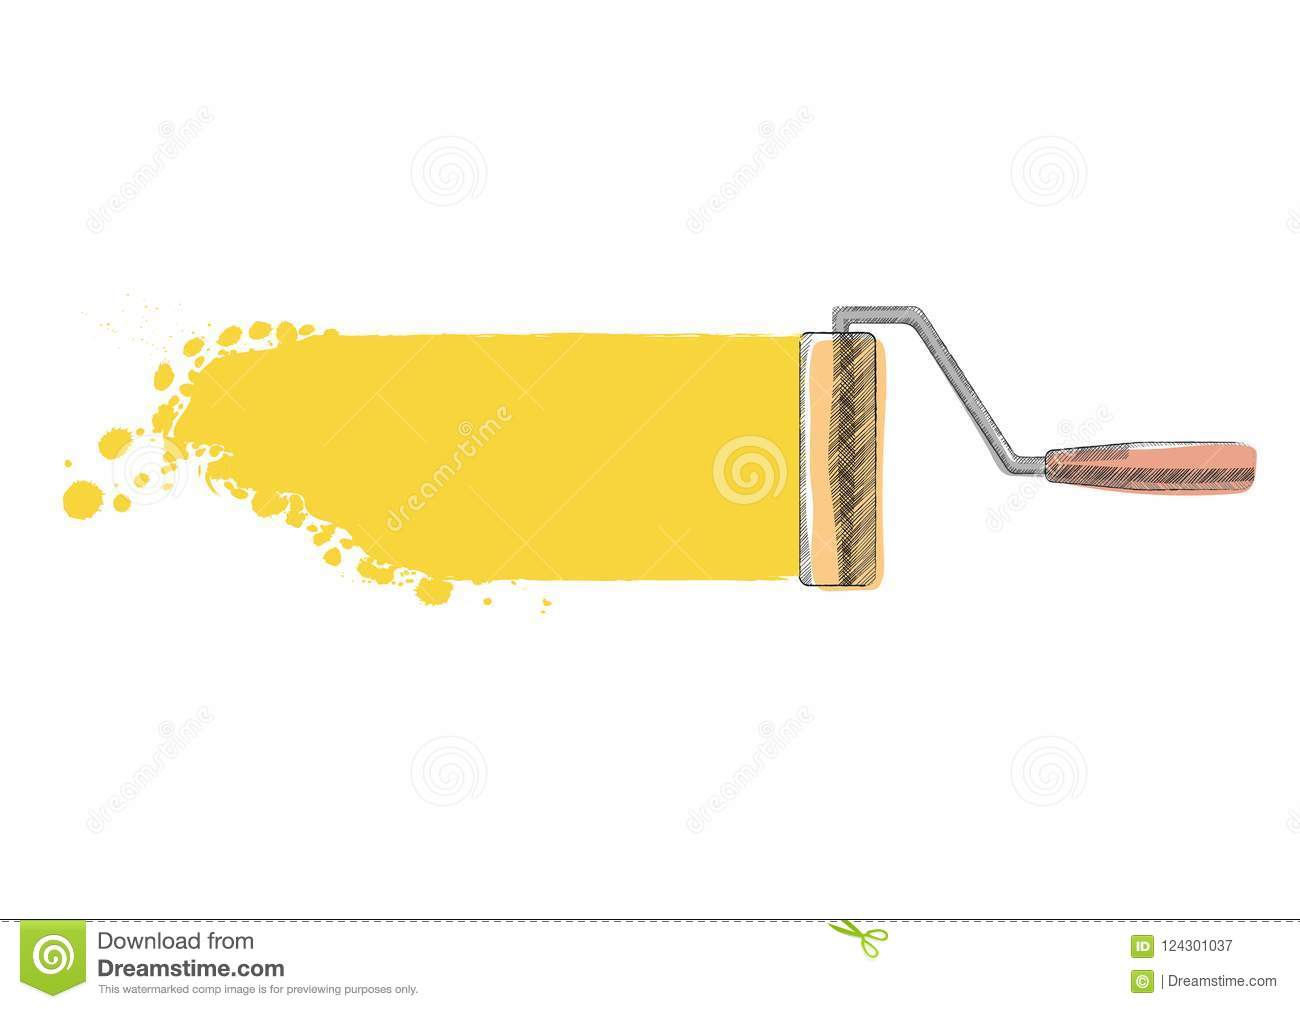 Paint roller. Painted stock vector. Illustration of creative - 124301037